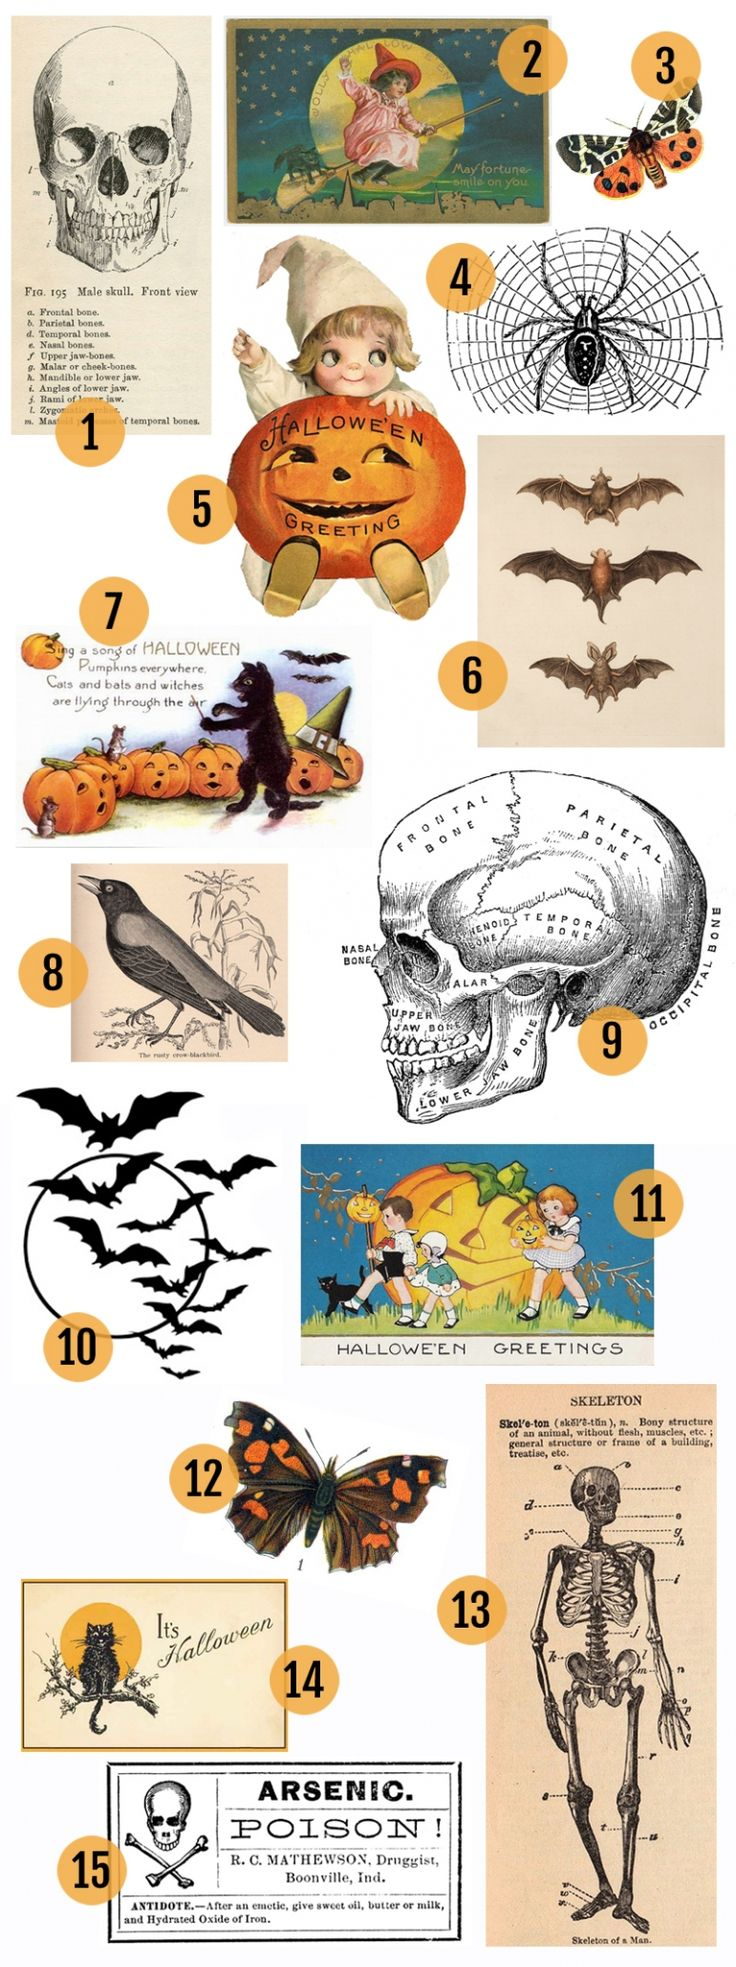 15 Free Vintage Halloween Clip Art Images >> Follow link to get image sources for each one.